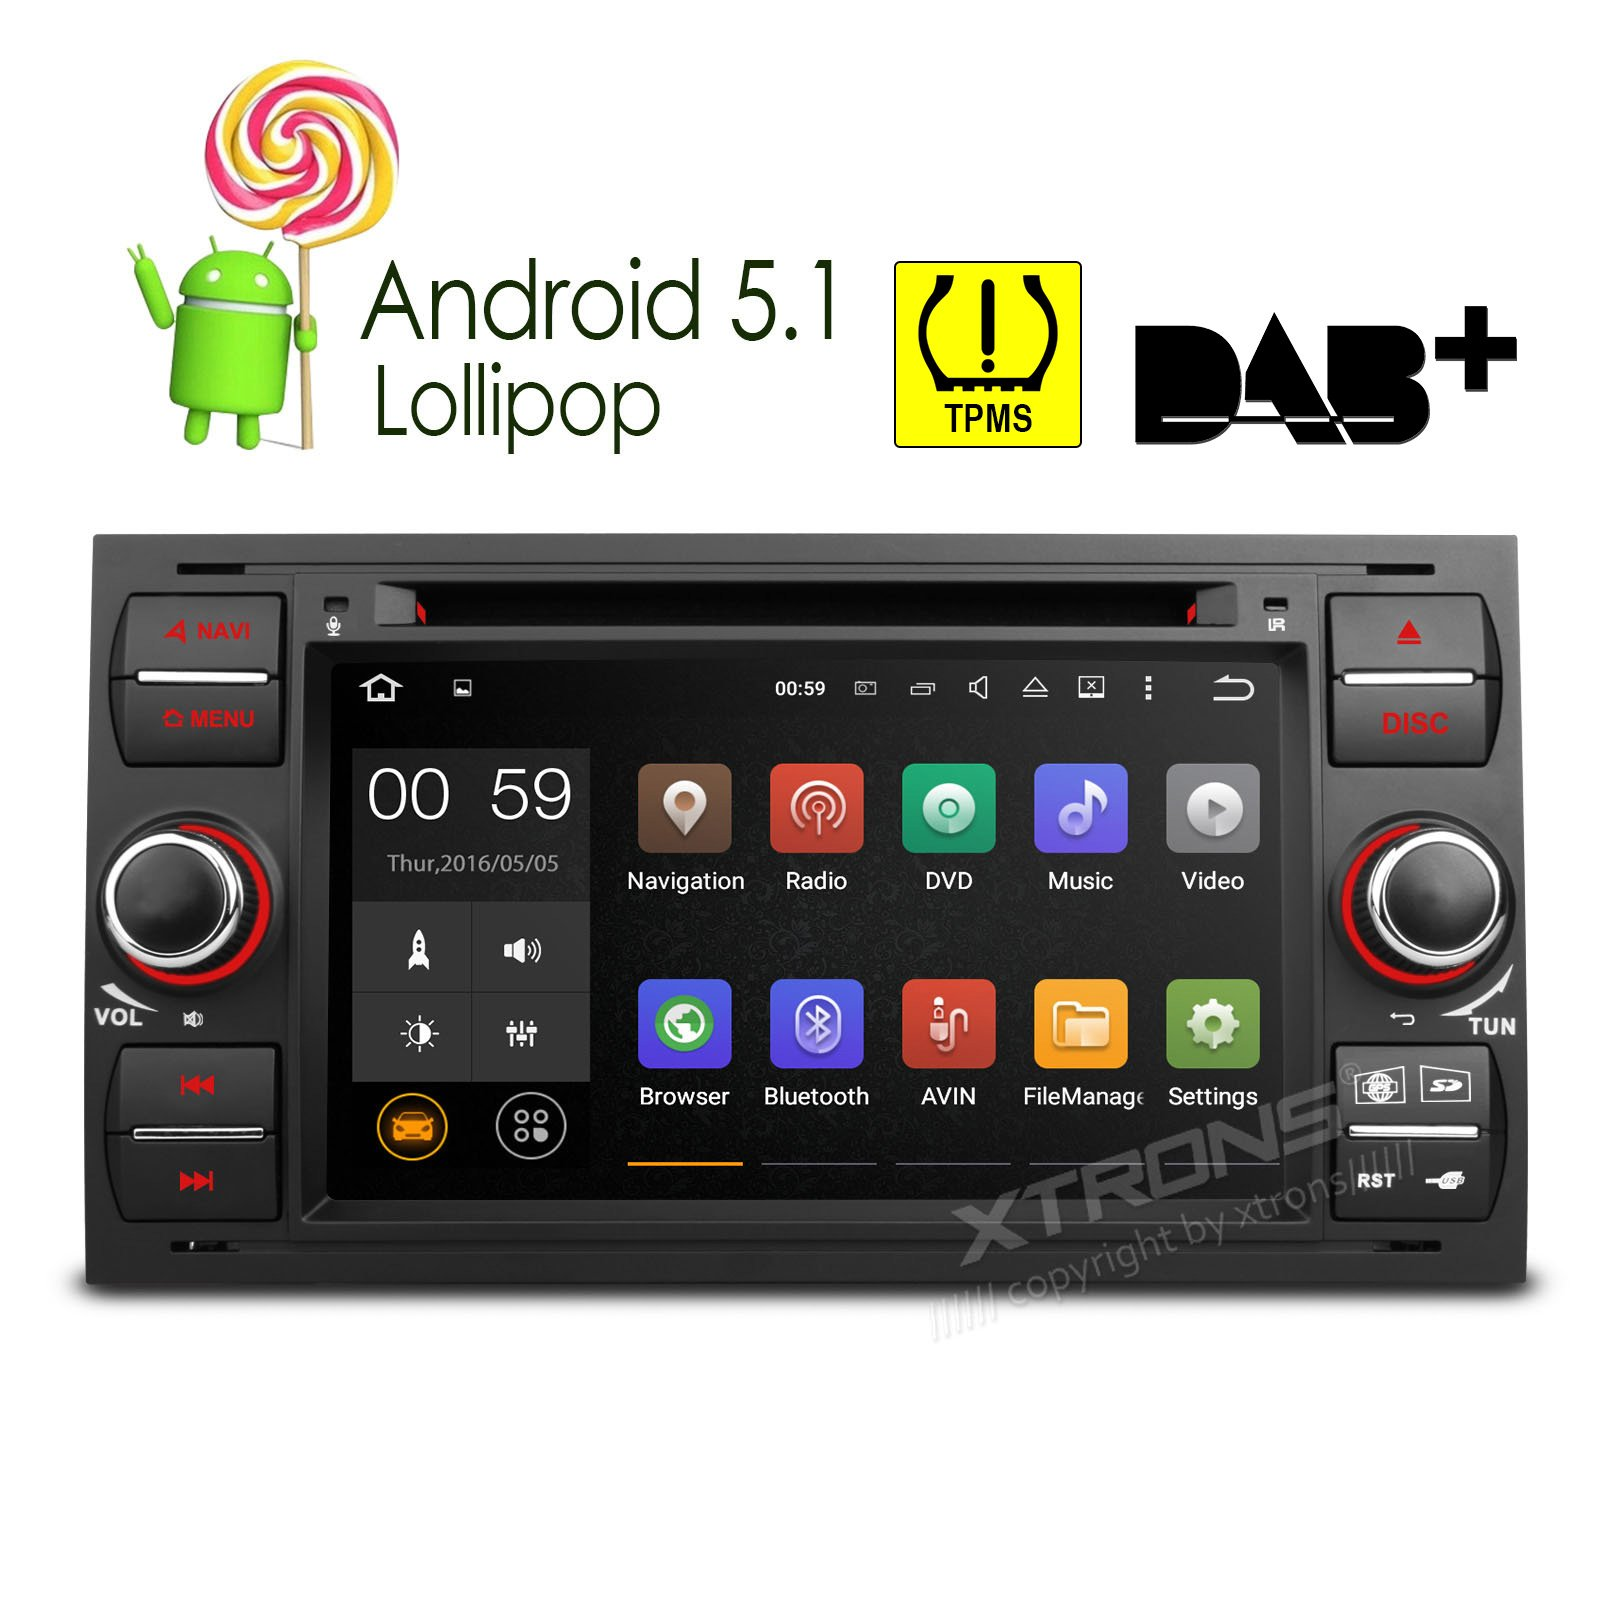 XTRONS Quad Core 7'' Android 5.1 Lollipop Car Stereo Multi-touch Screen Radio CD DVD Player GPS 1080P Video Screen Mirroring OBD2 Wifi CANbus Tire Pressure Monitoring for Ford Focus